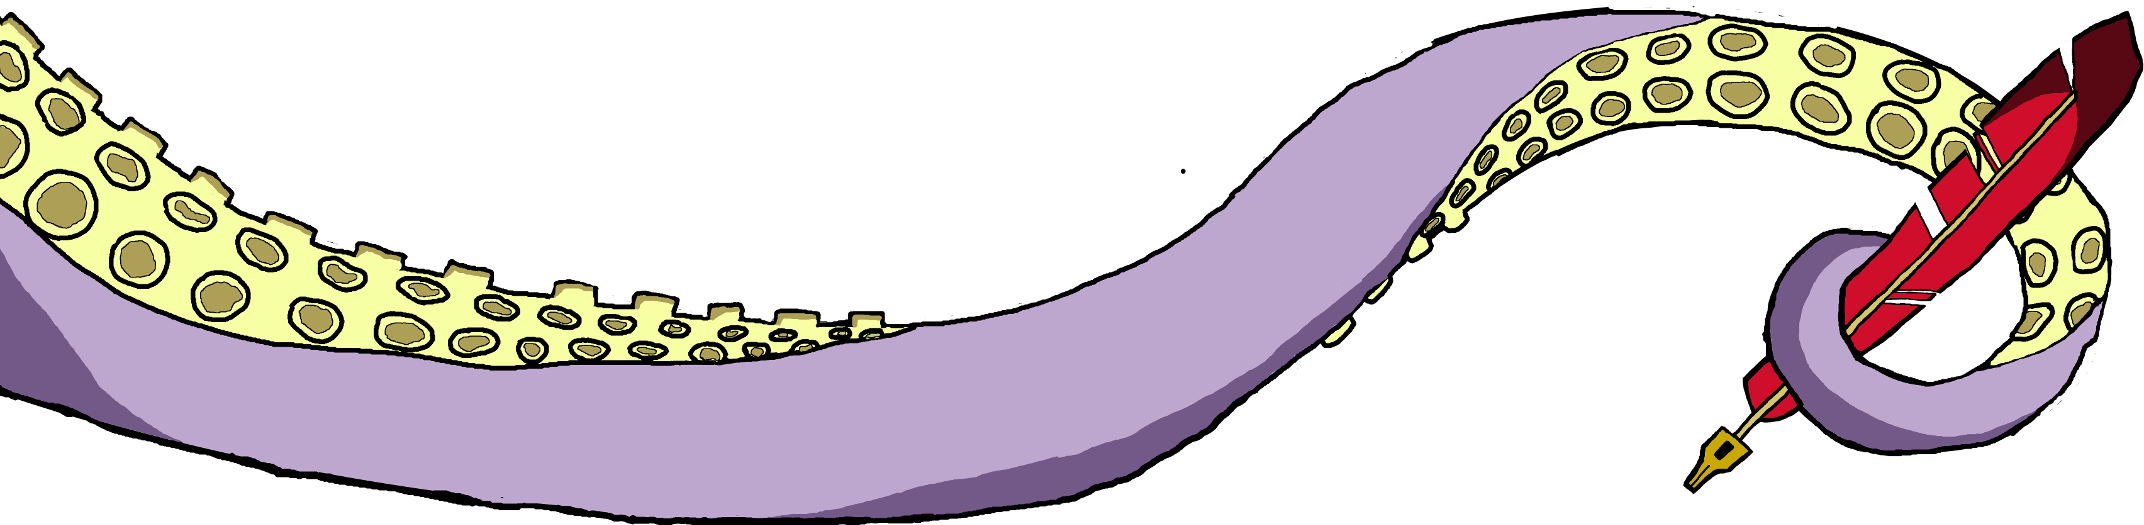 Tetra's tentacle holding a quill.